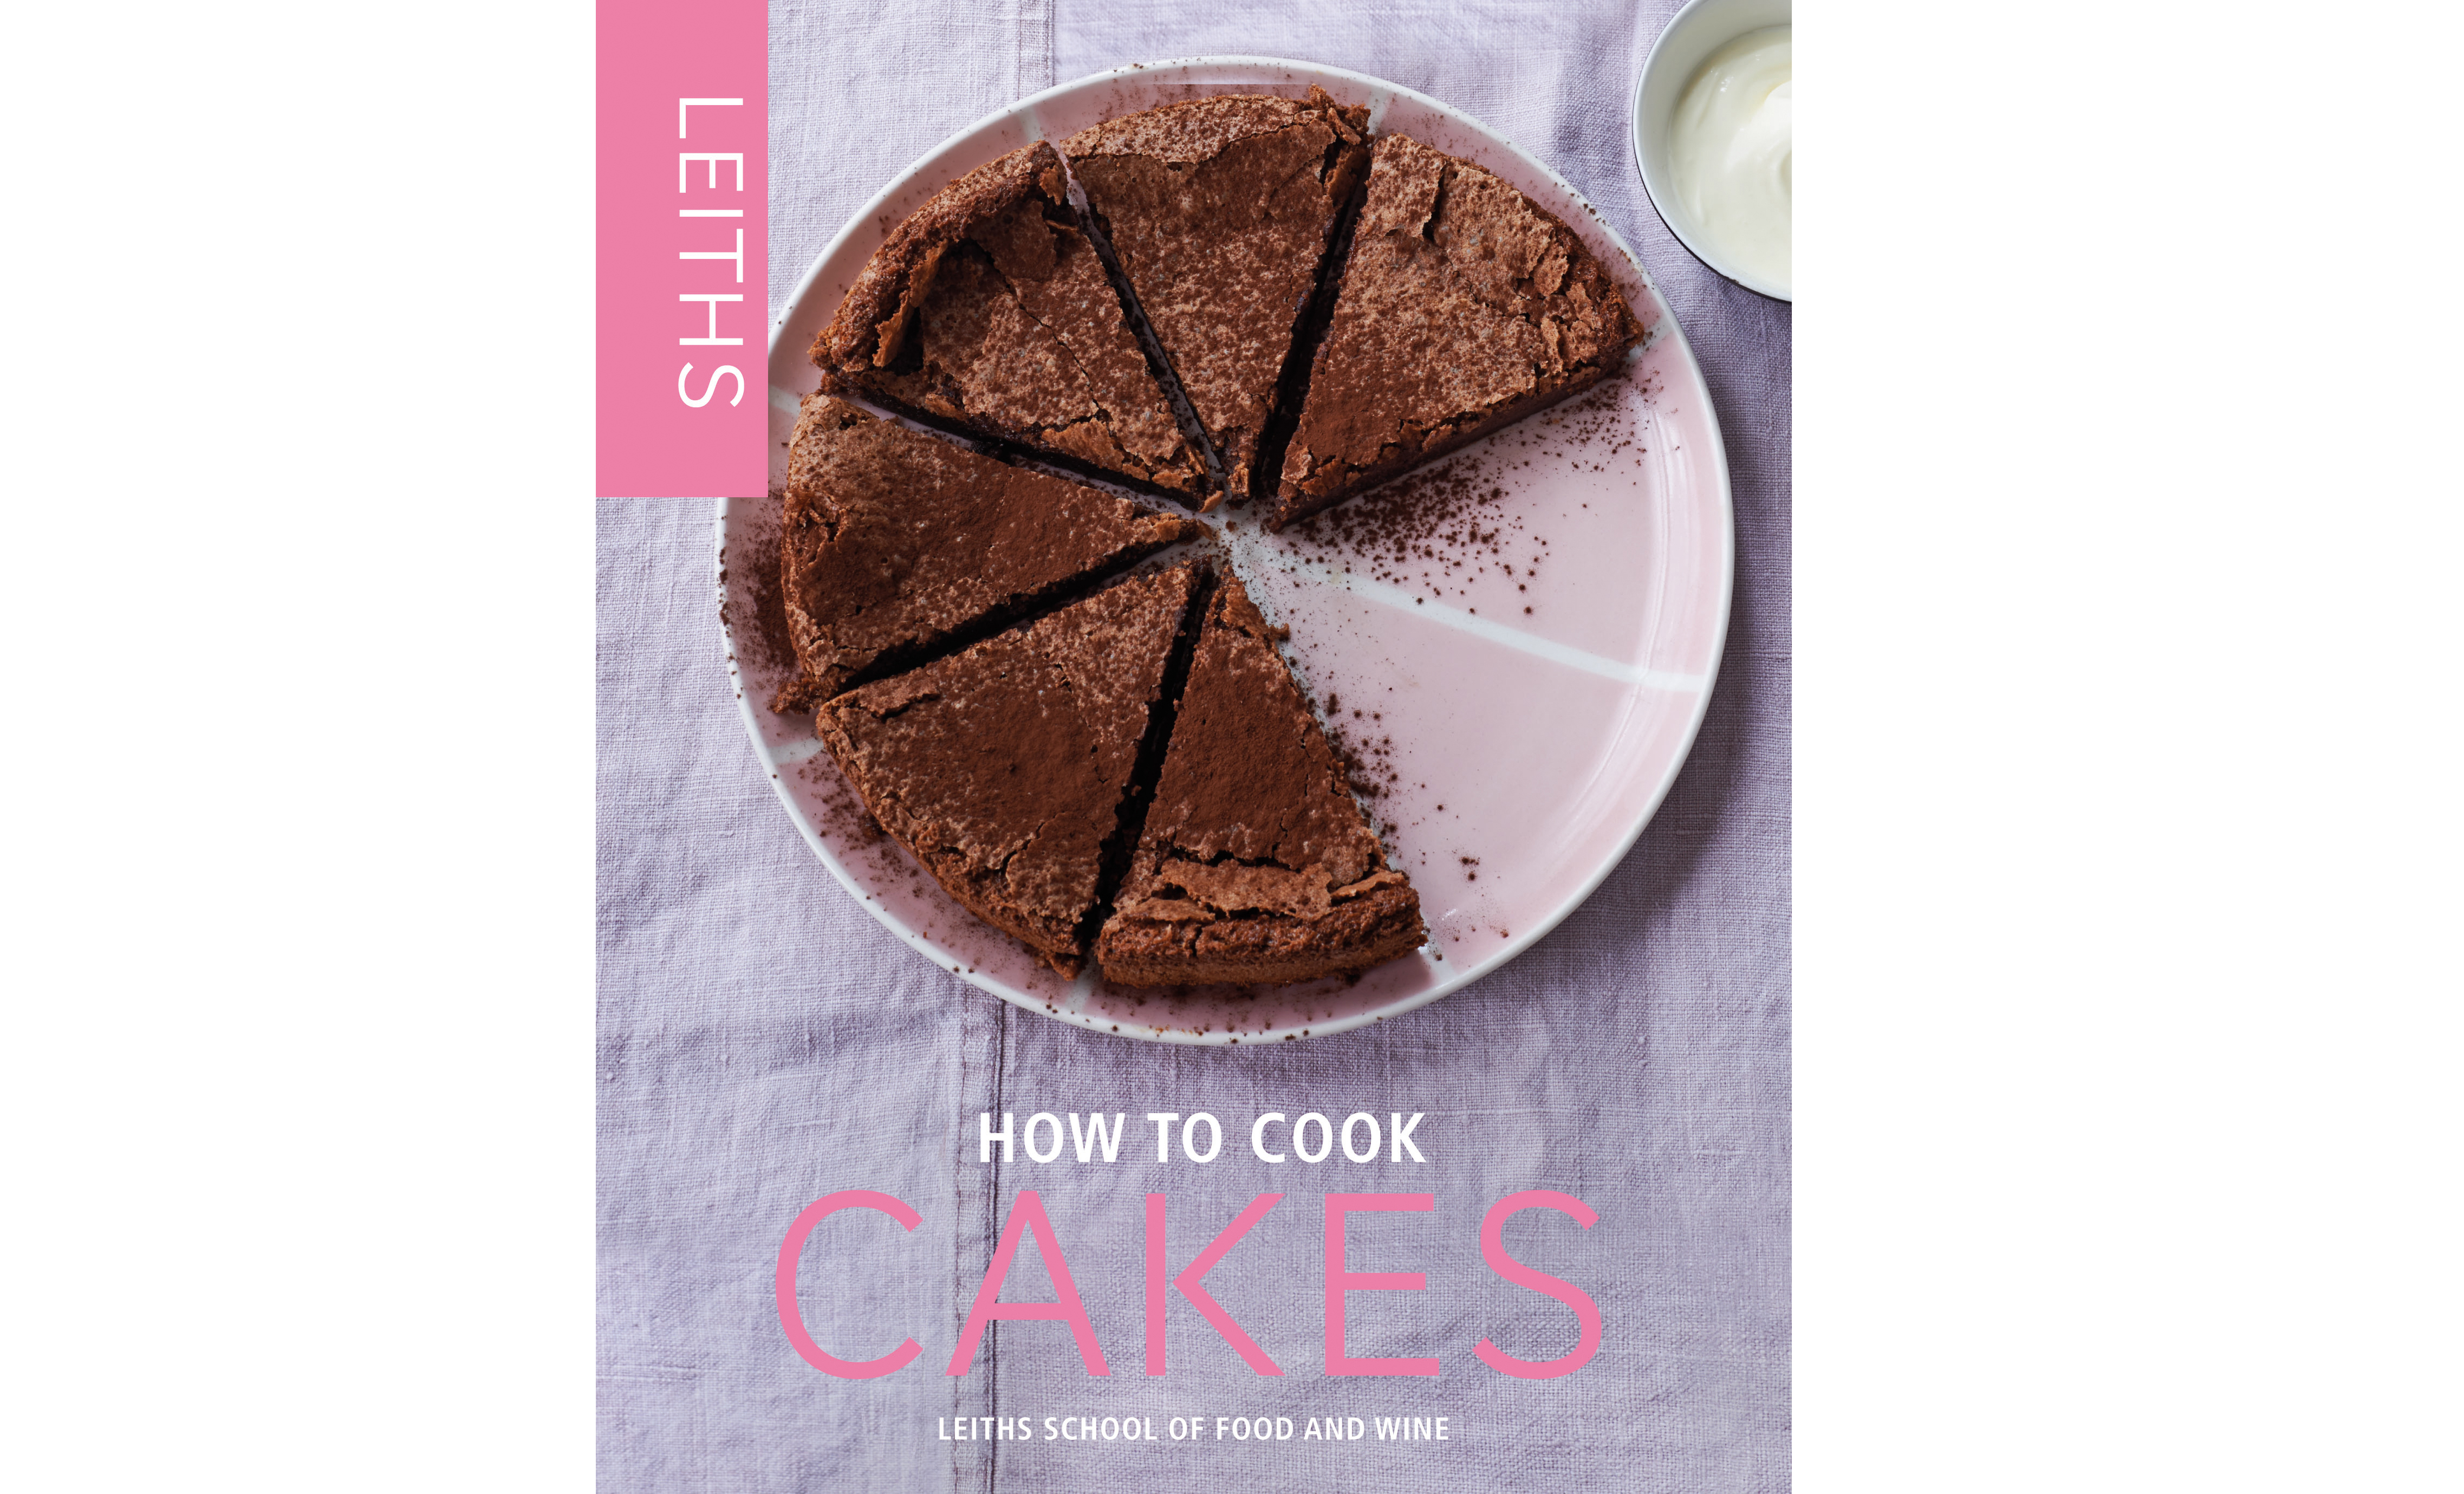 Leiths How To Cook Cake by Leith's School of Food and Wine (Quadrille/Peter Cassidy/PA)